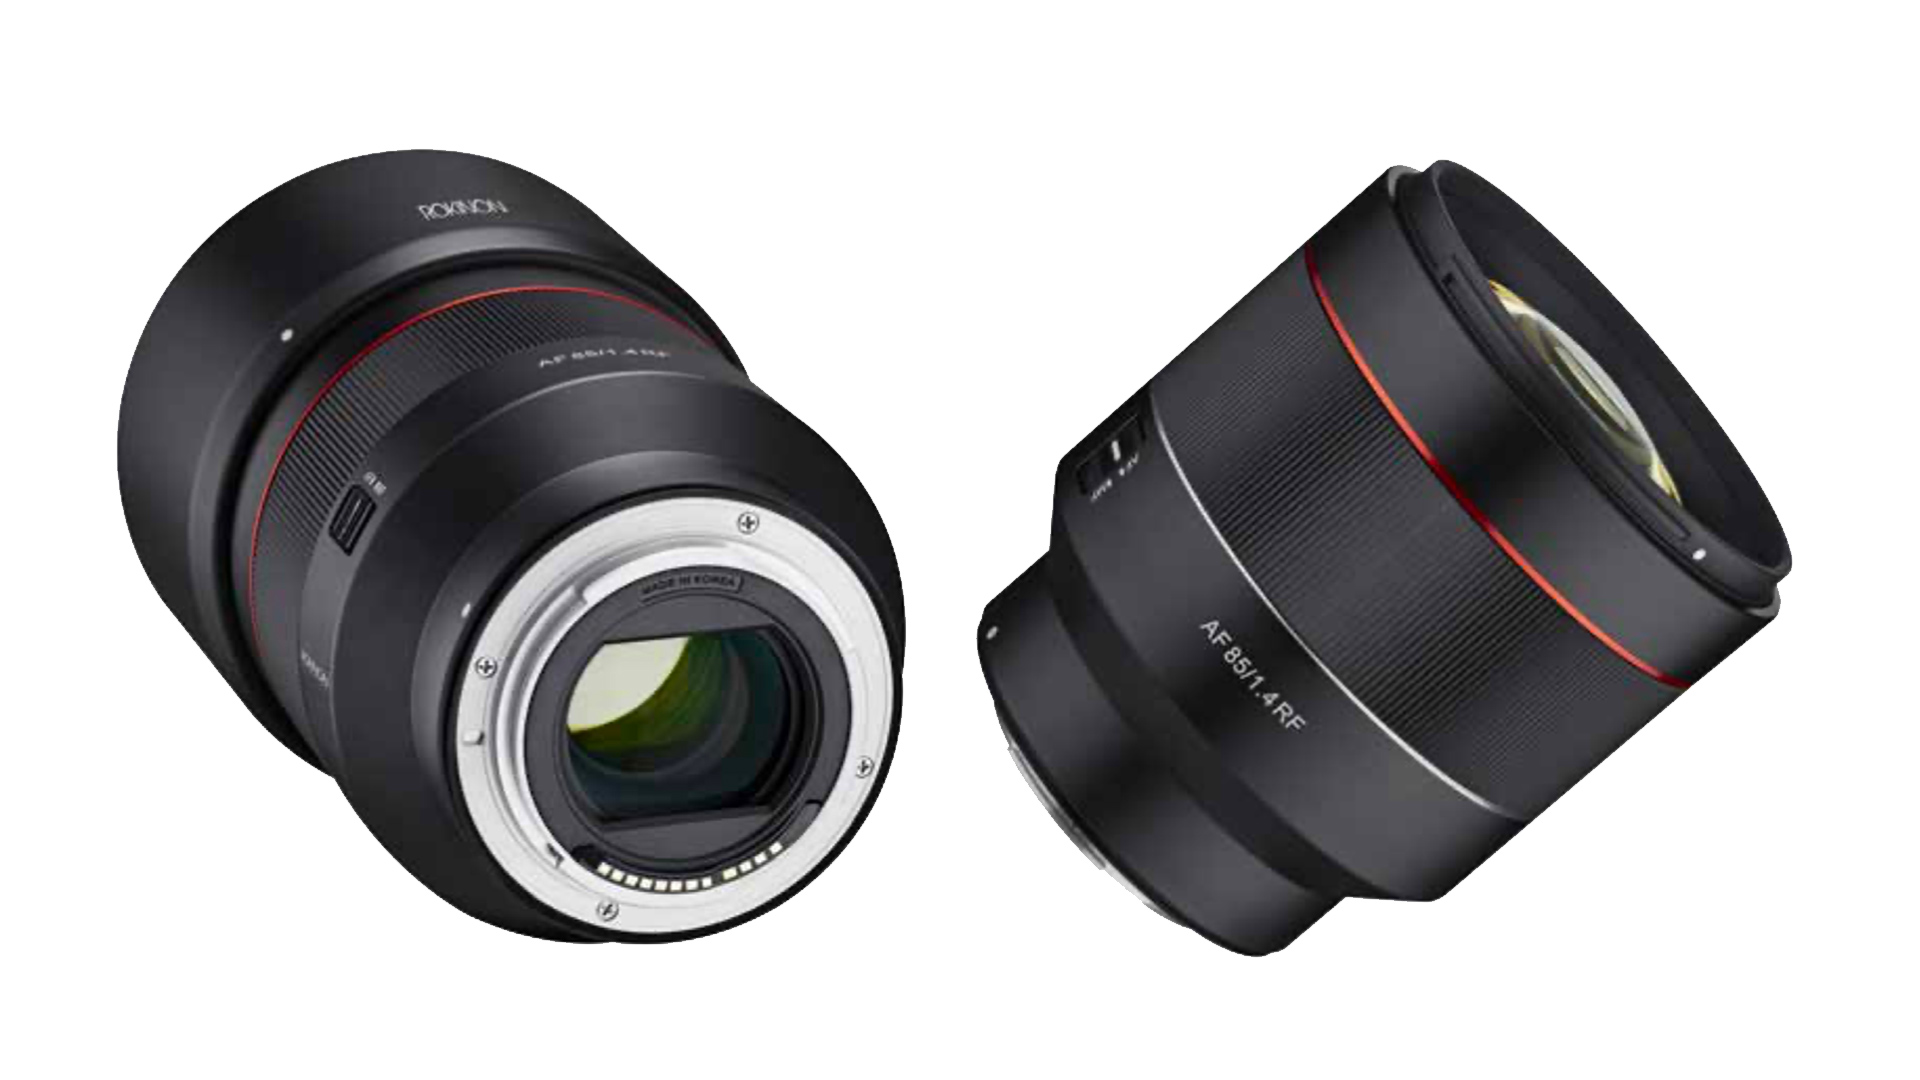 Rokinon's new AF 85mm f/1.4 lens for RF Mount. Image: Rokinon